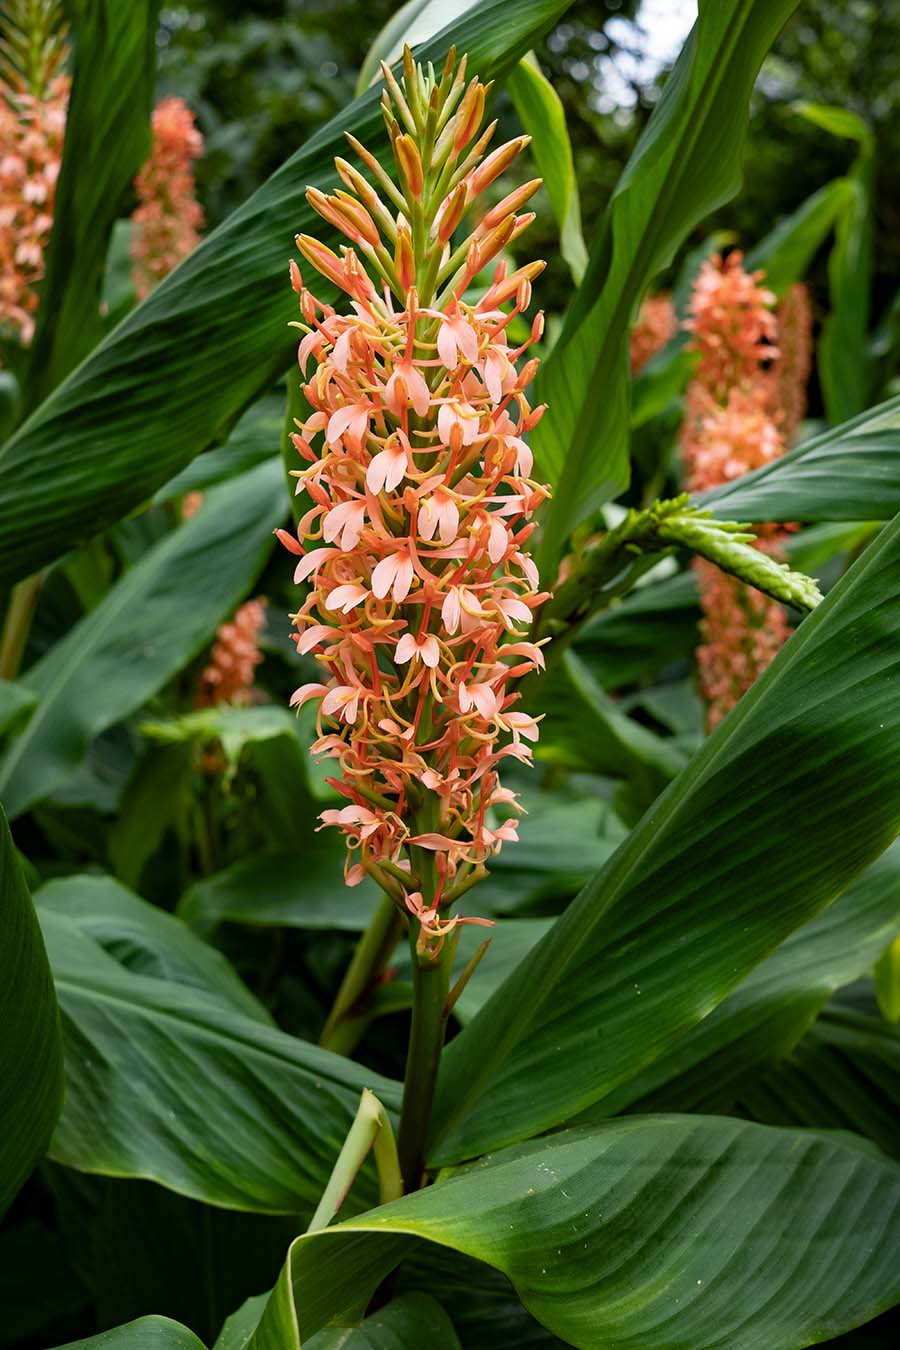 Hedychium species - flower and leaves